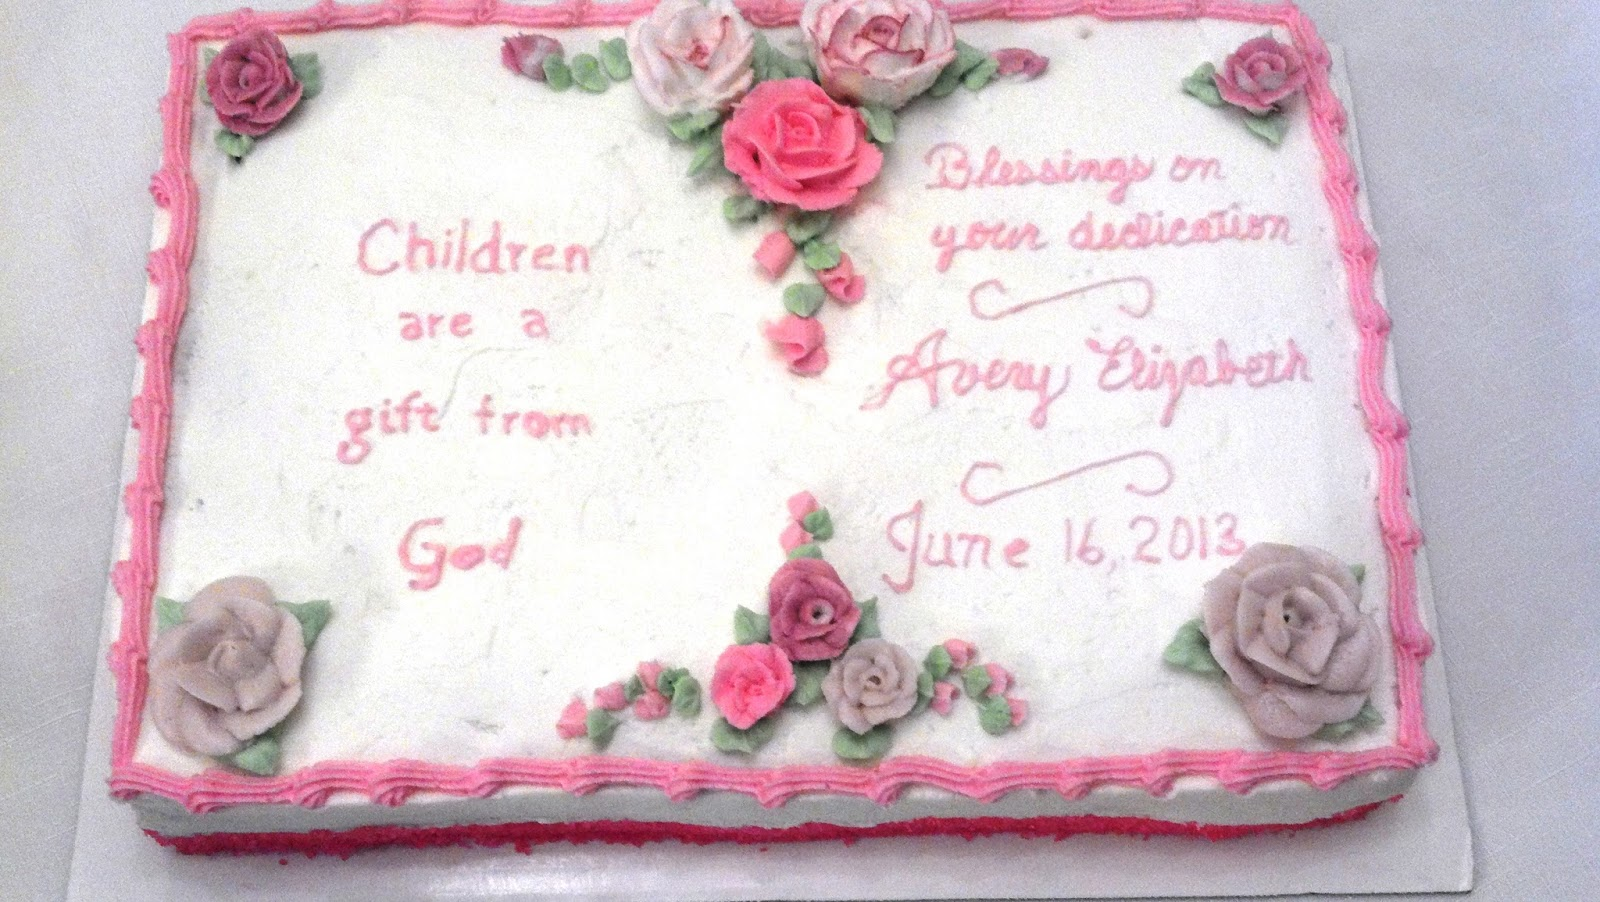 Cake Designs For Baby Dedication : Custom Cakes: Baby shower/dedication